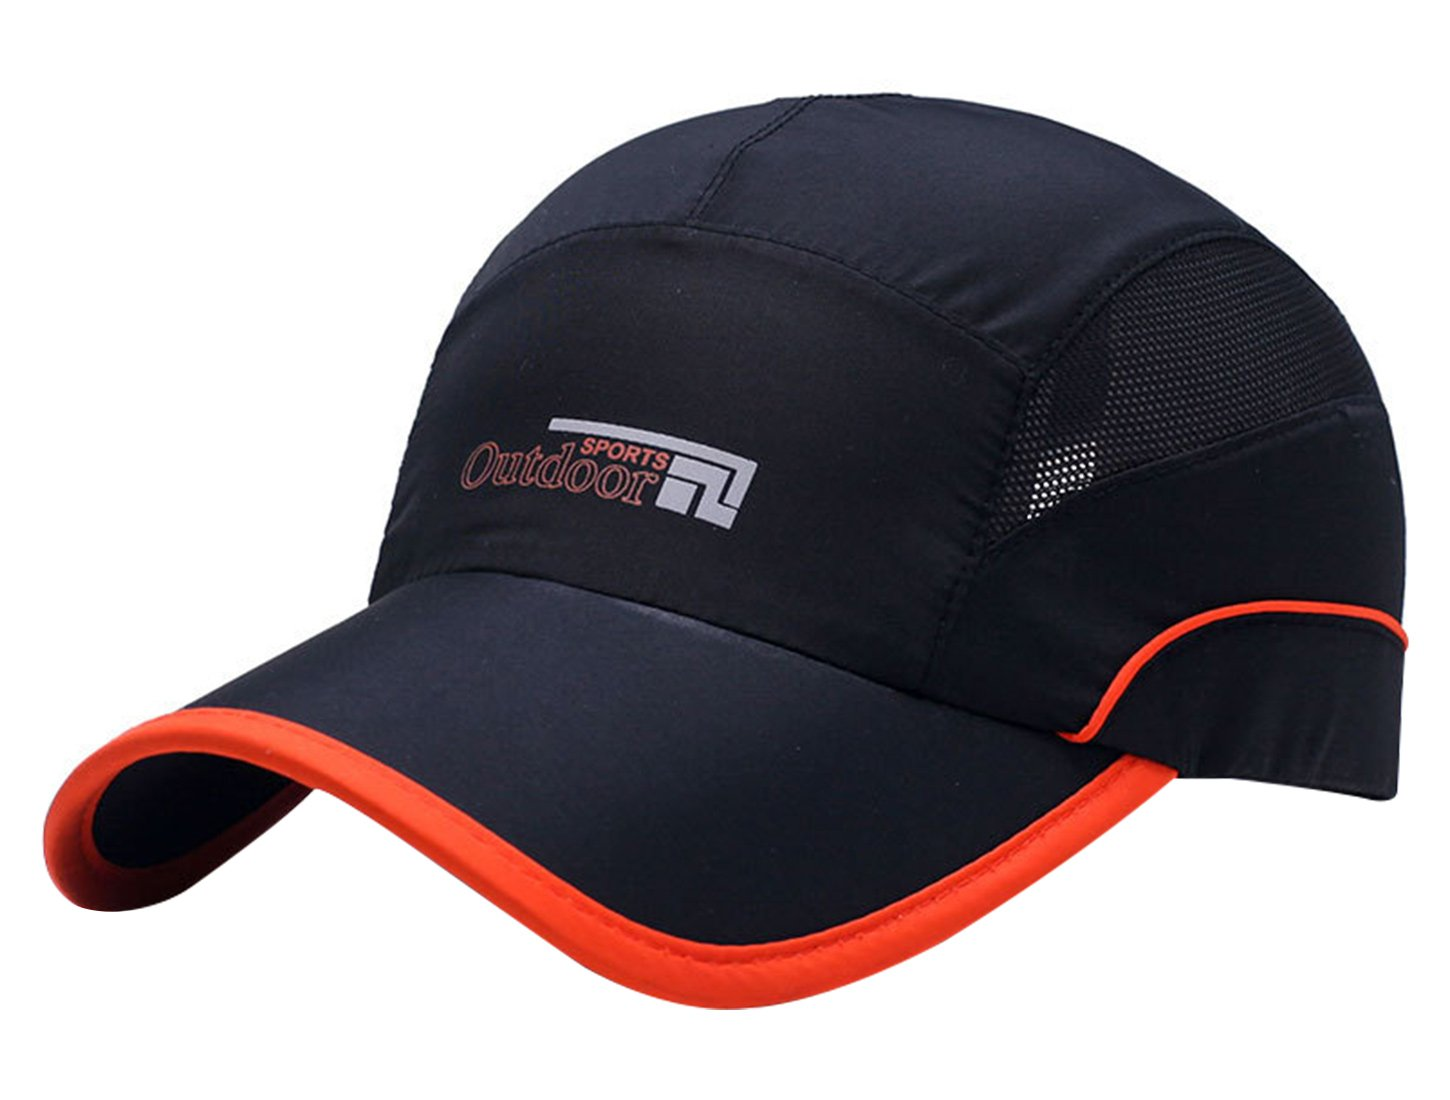 Summer Baseball Cap,Men Sport Hat Adult Sporting Goods Hat for Dad 56-60cm Adjustable Runing Cap Unisex Novelty Baseball Hat with Apparel Fabric and Polyester Black